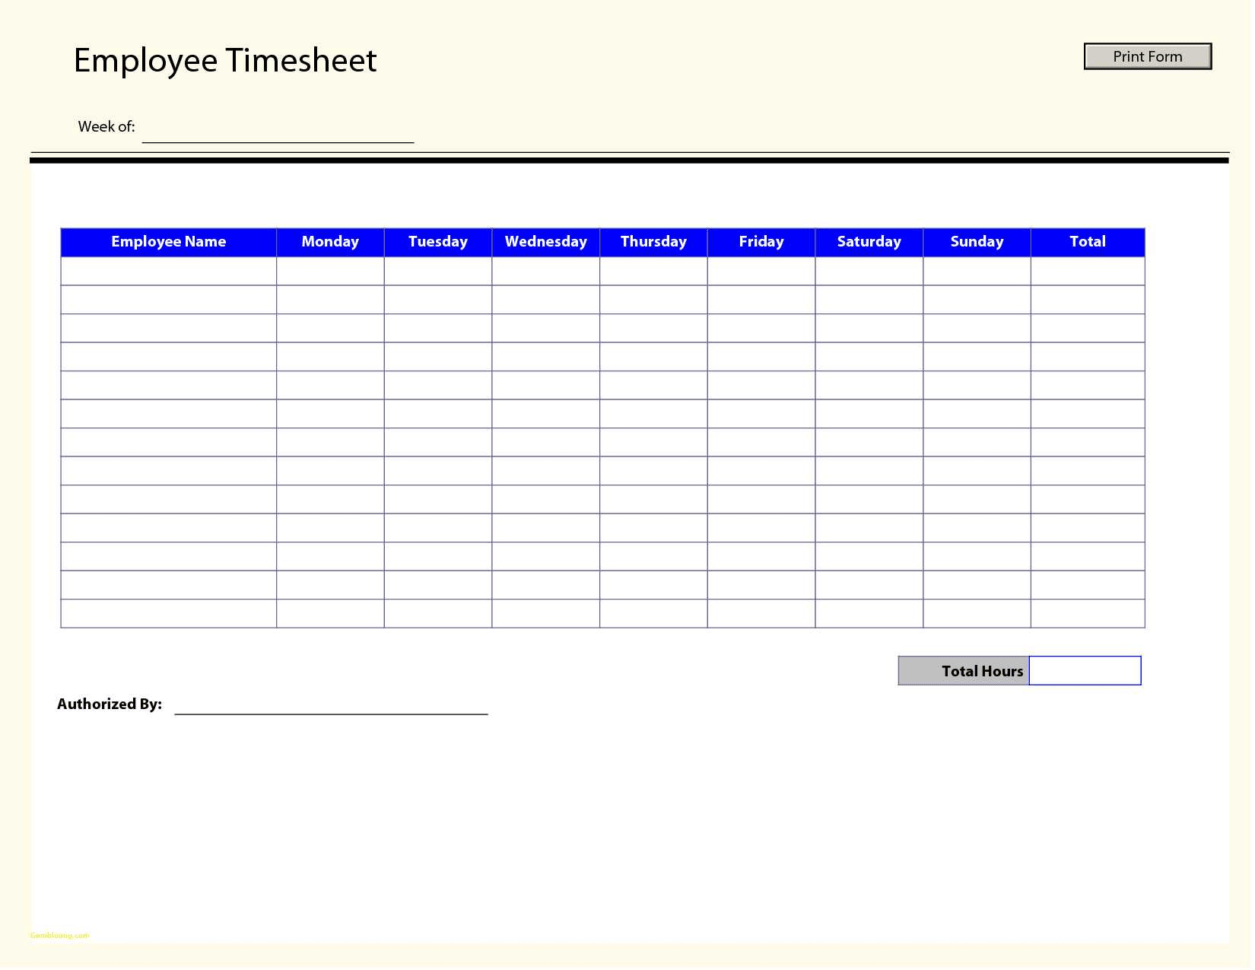 Spreadsheet To Track Hours Worked 2 Spreadsheet Downloa Spreadsheet To Track Hours Worked